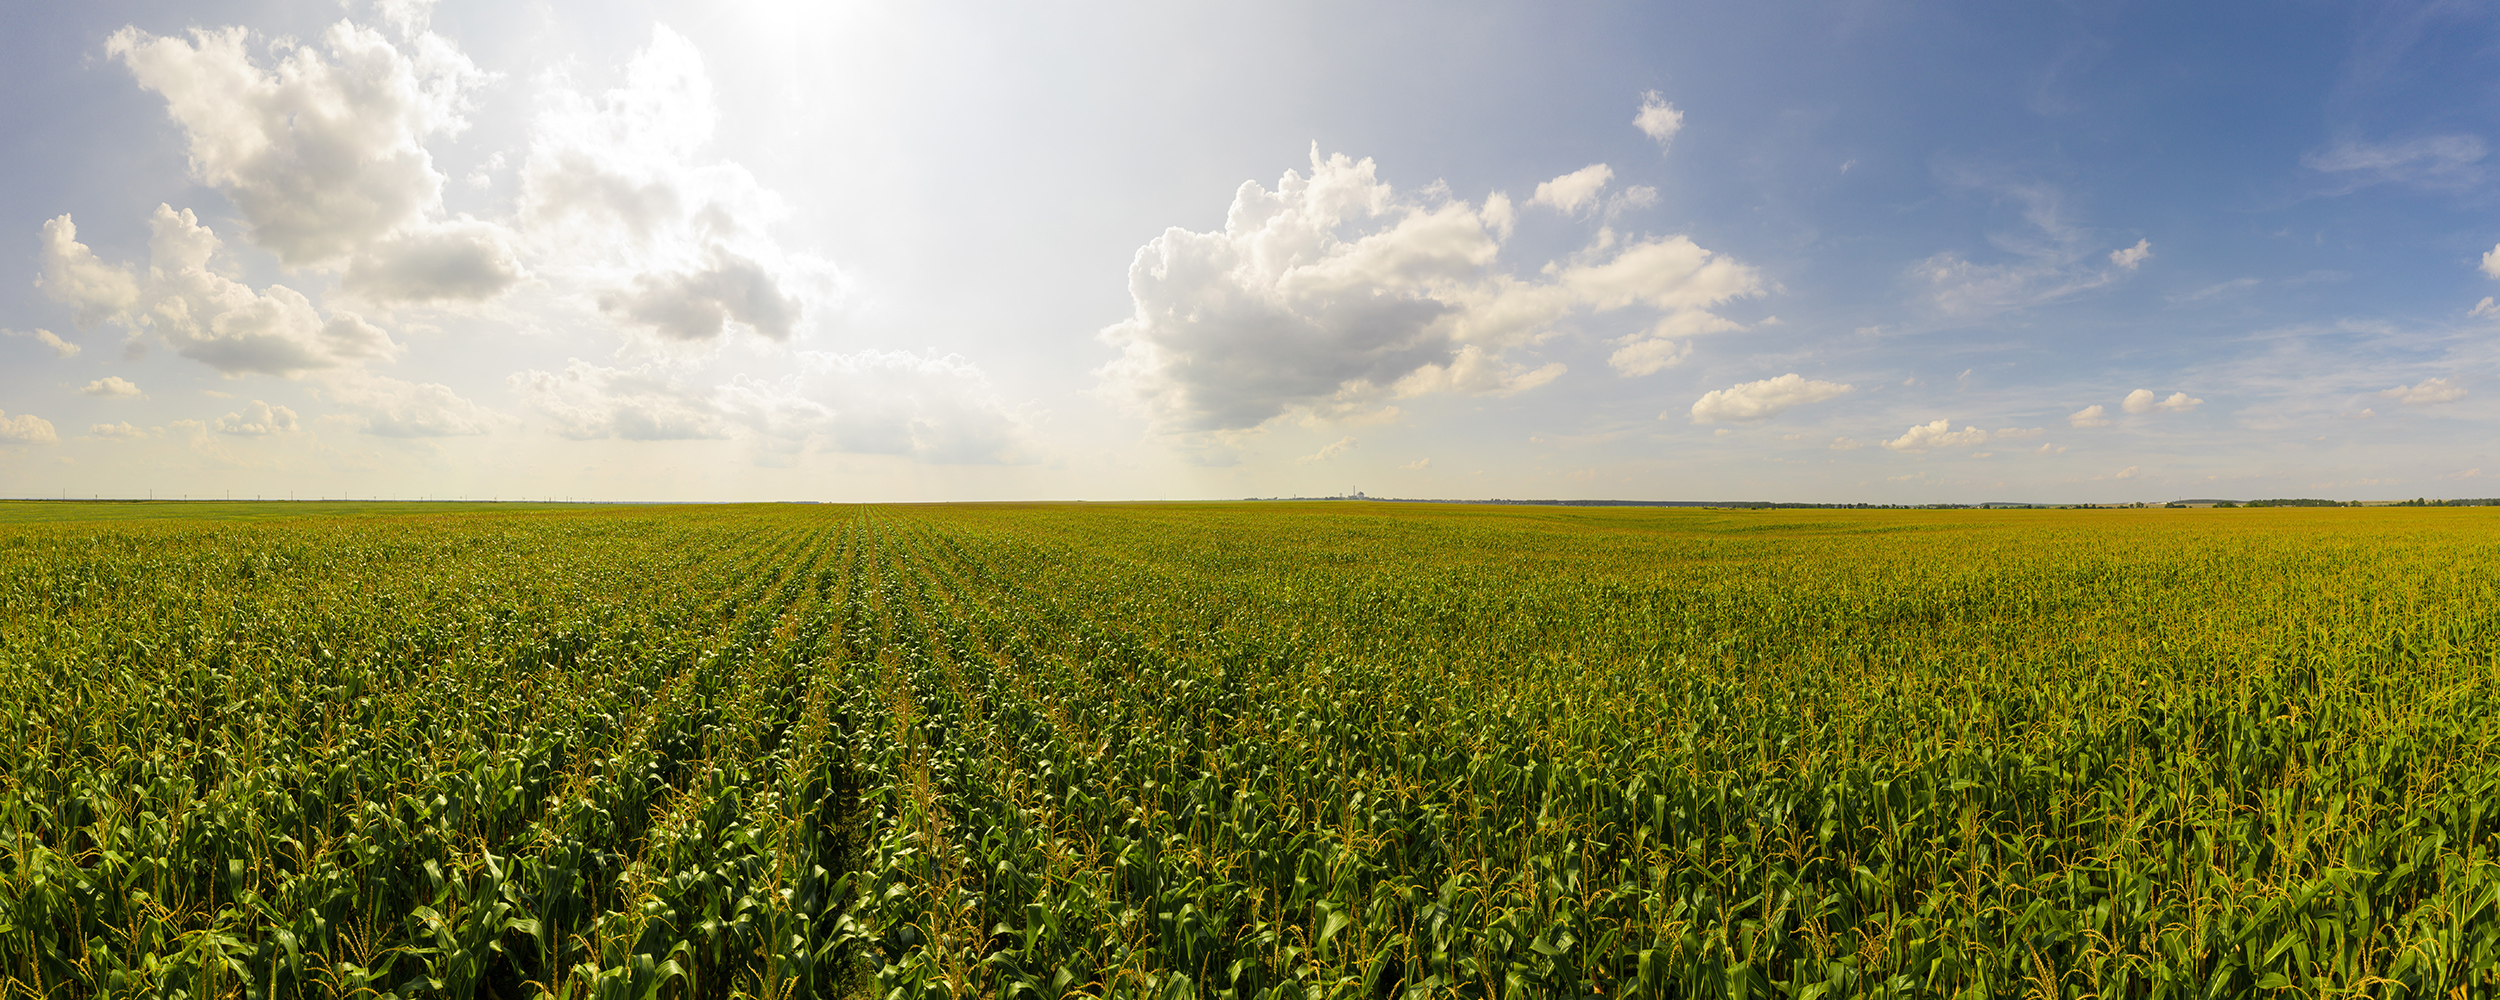 In a Case Study Conducted by Lux Research, AquaSpy-Managed Fields Generated 22% Higher Yields